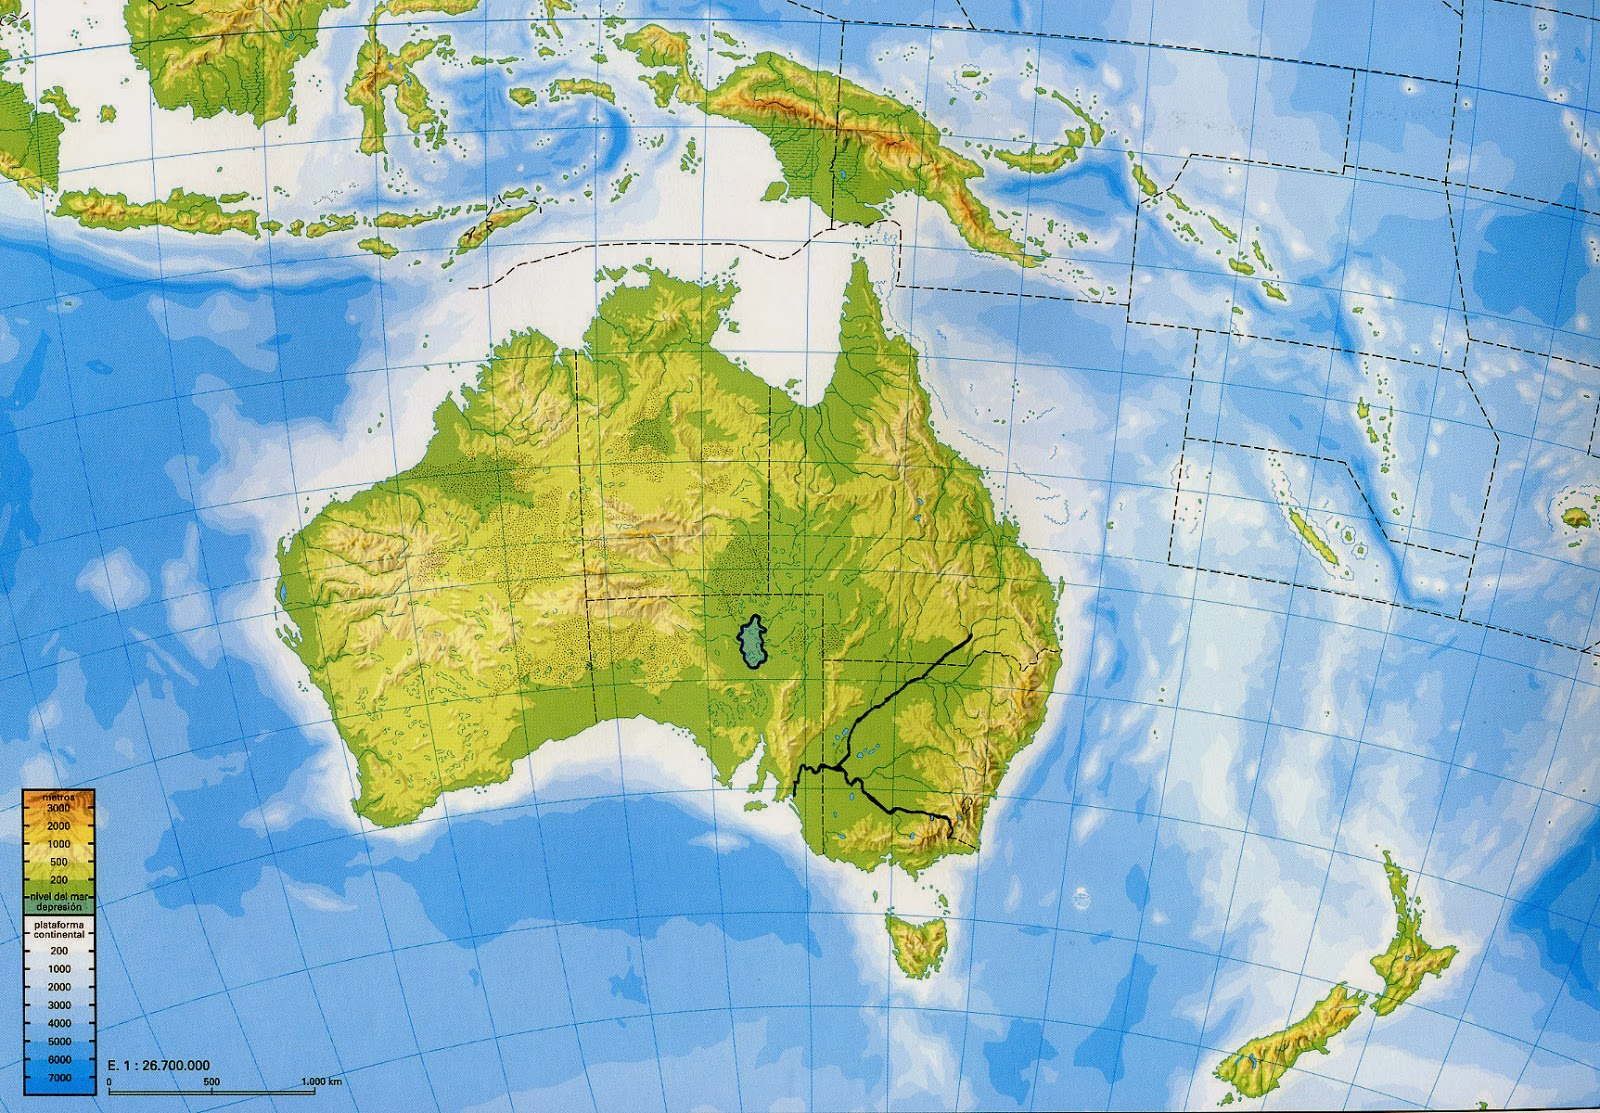 Geography And History Blog Asia And Oceania Physical Maps - Physical map of oceania